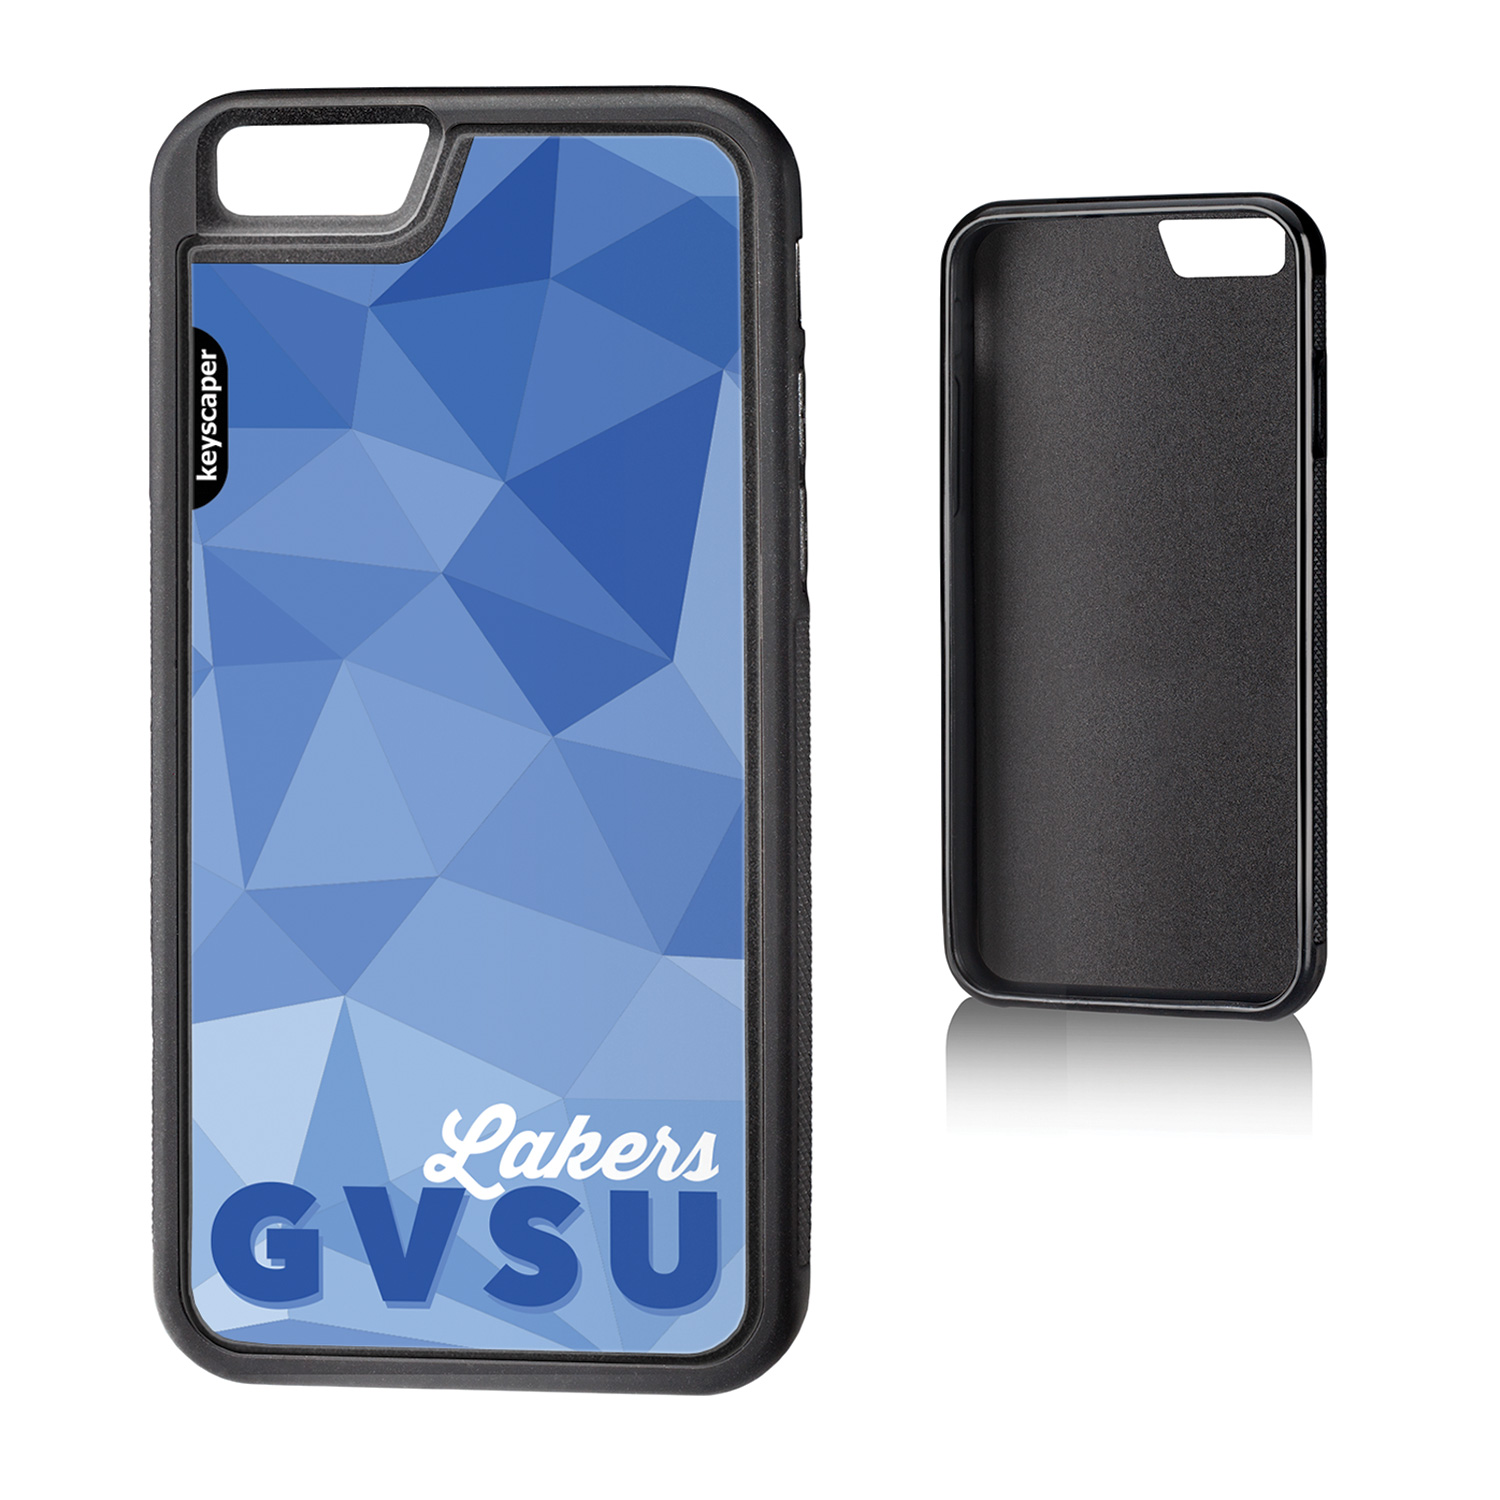 Grand Valley State iPhone 6 (4.7 inch) Bumper Case